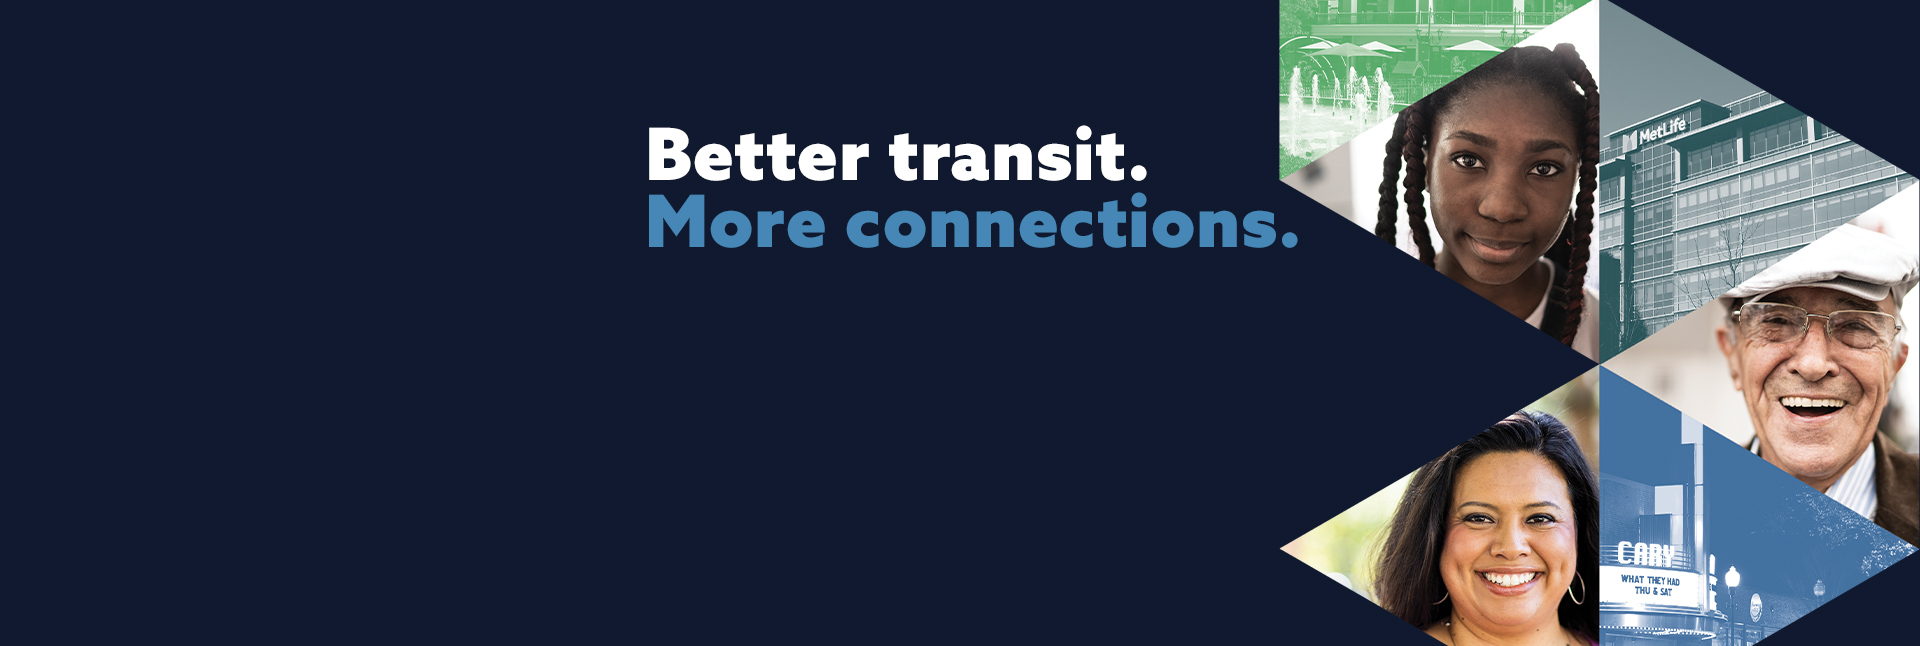 GoCary Better Transit Graphic